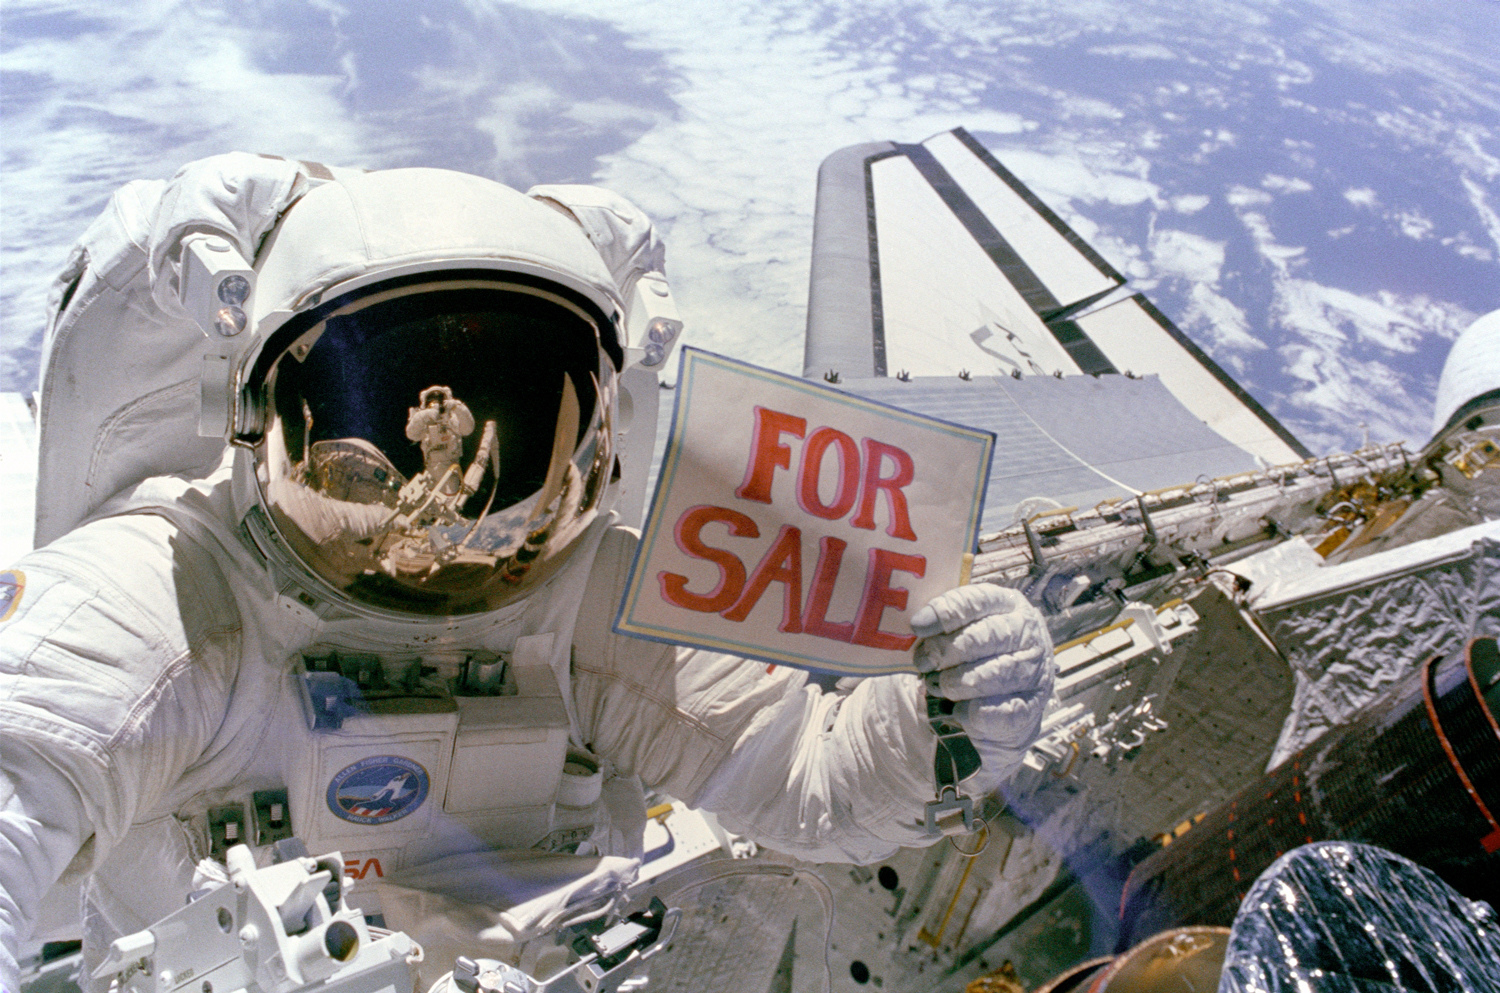 7. Space For Sale